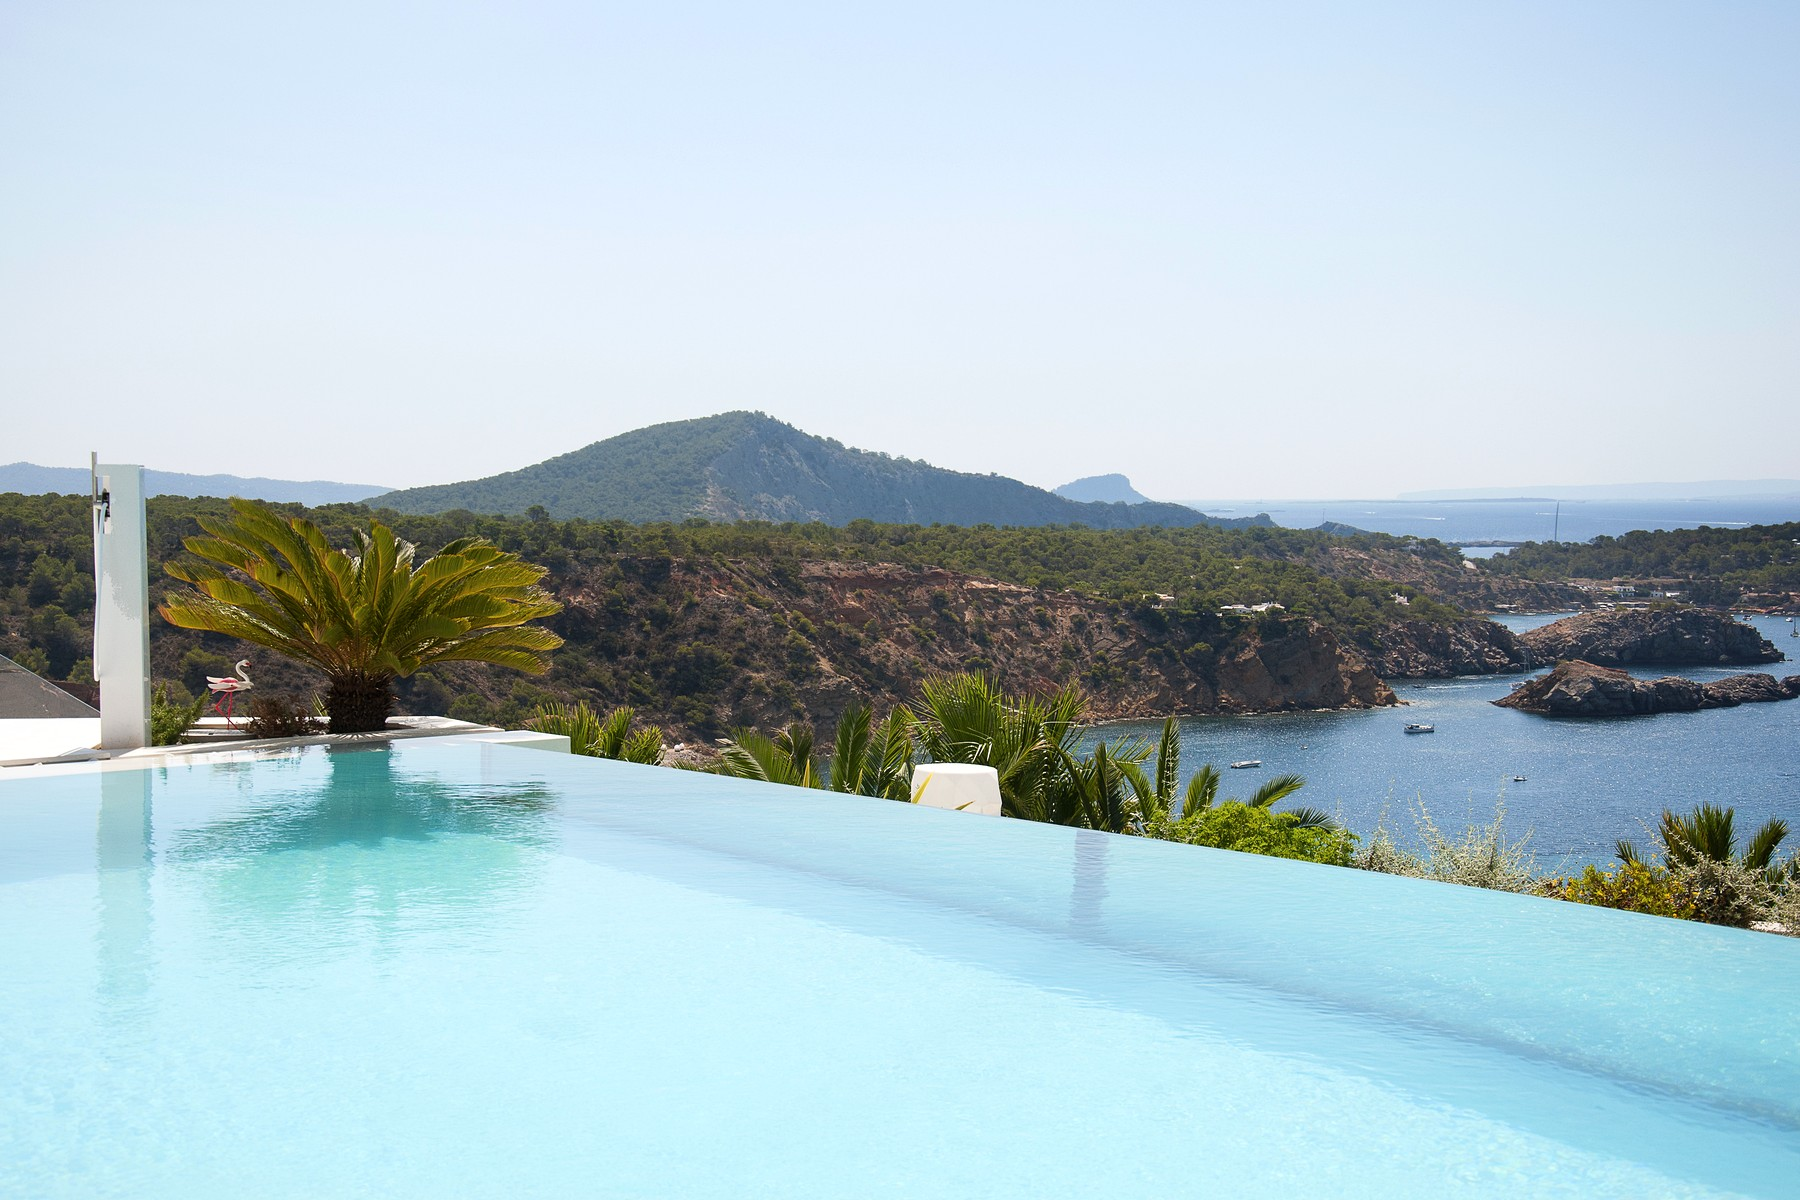 Single Family Home for Sale at Brand New Villa In Gated Community Vista Alegre Ibiza, Ibiza, 07830 Spain